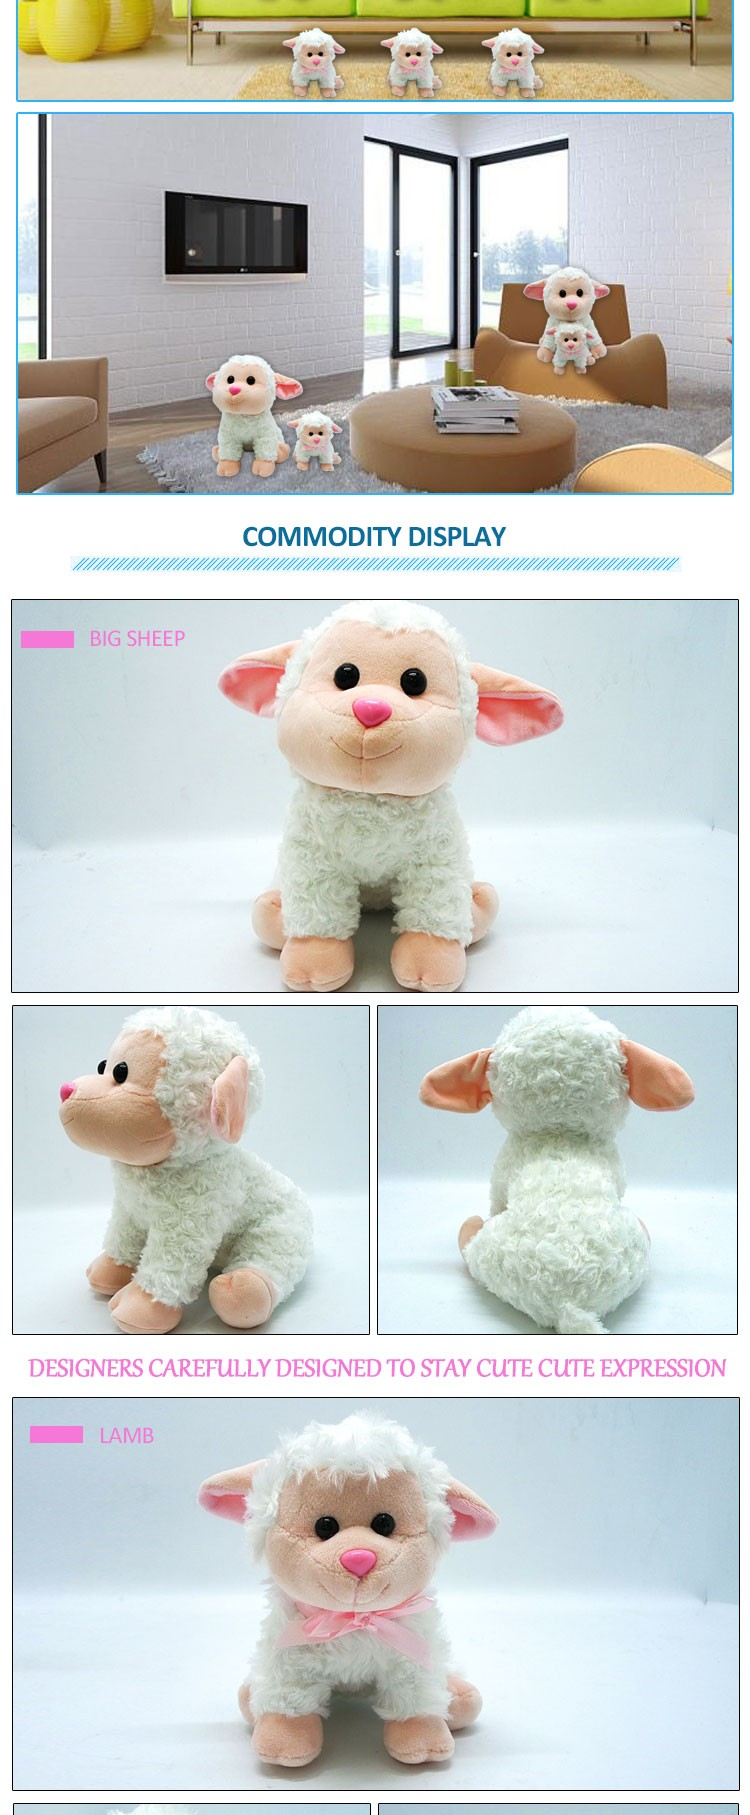 Soft Toys for Children Plsuh Sheep